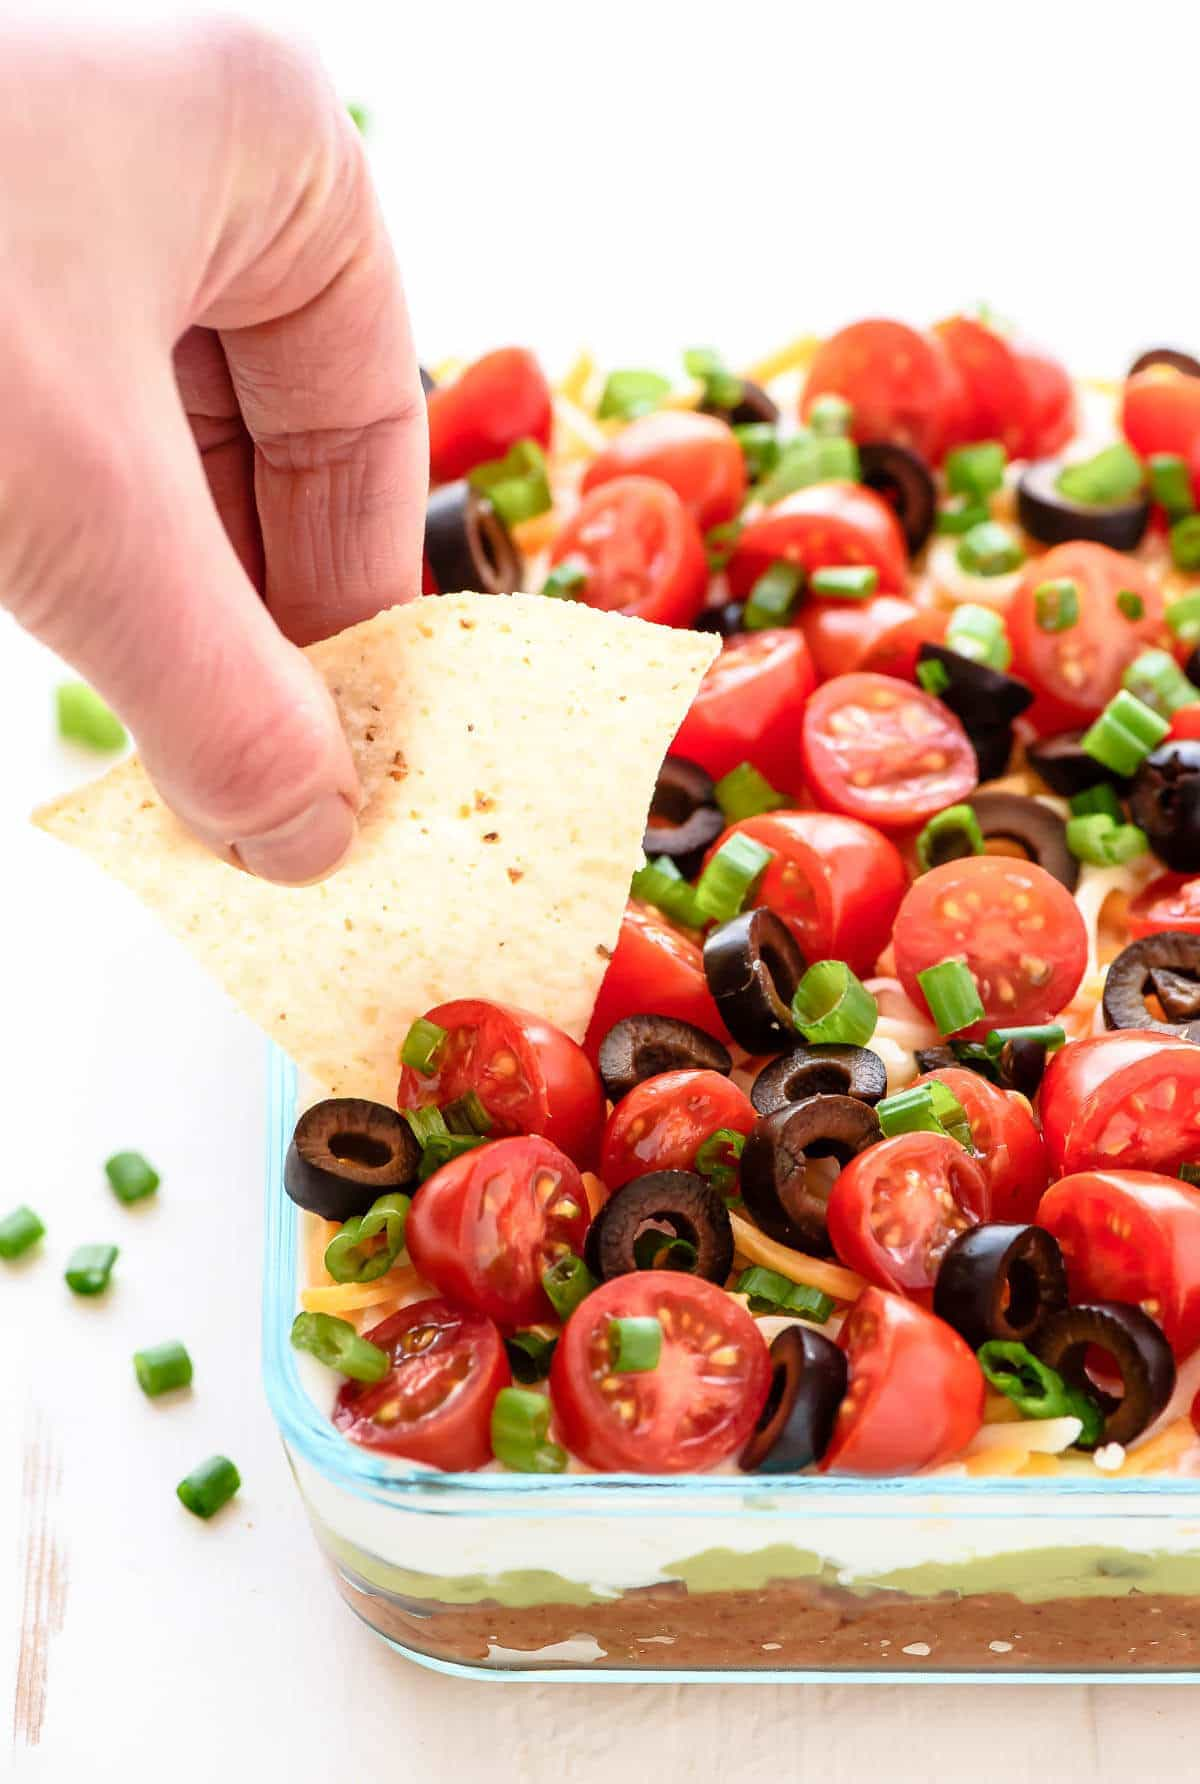 Learn how to make Classic 7-Layer Taco Dip with this simple recipe. Made with fresh ingredients, this is the BEST Mexican layer dip and is perfect for any party! www.wellplated.com